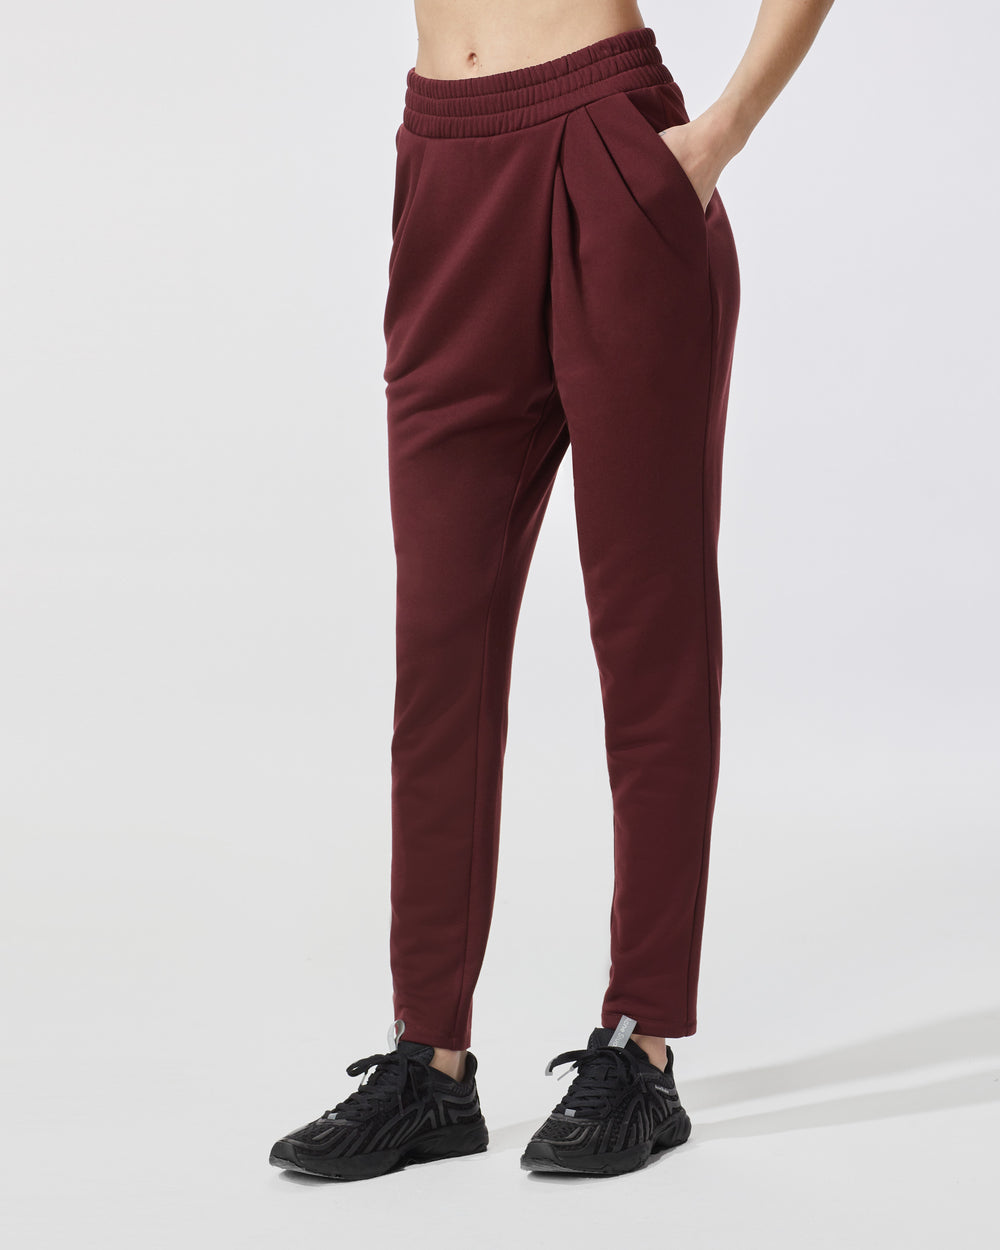 Repose Lounge Pant - Wine